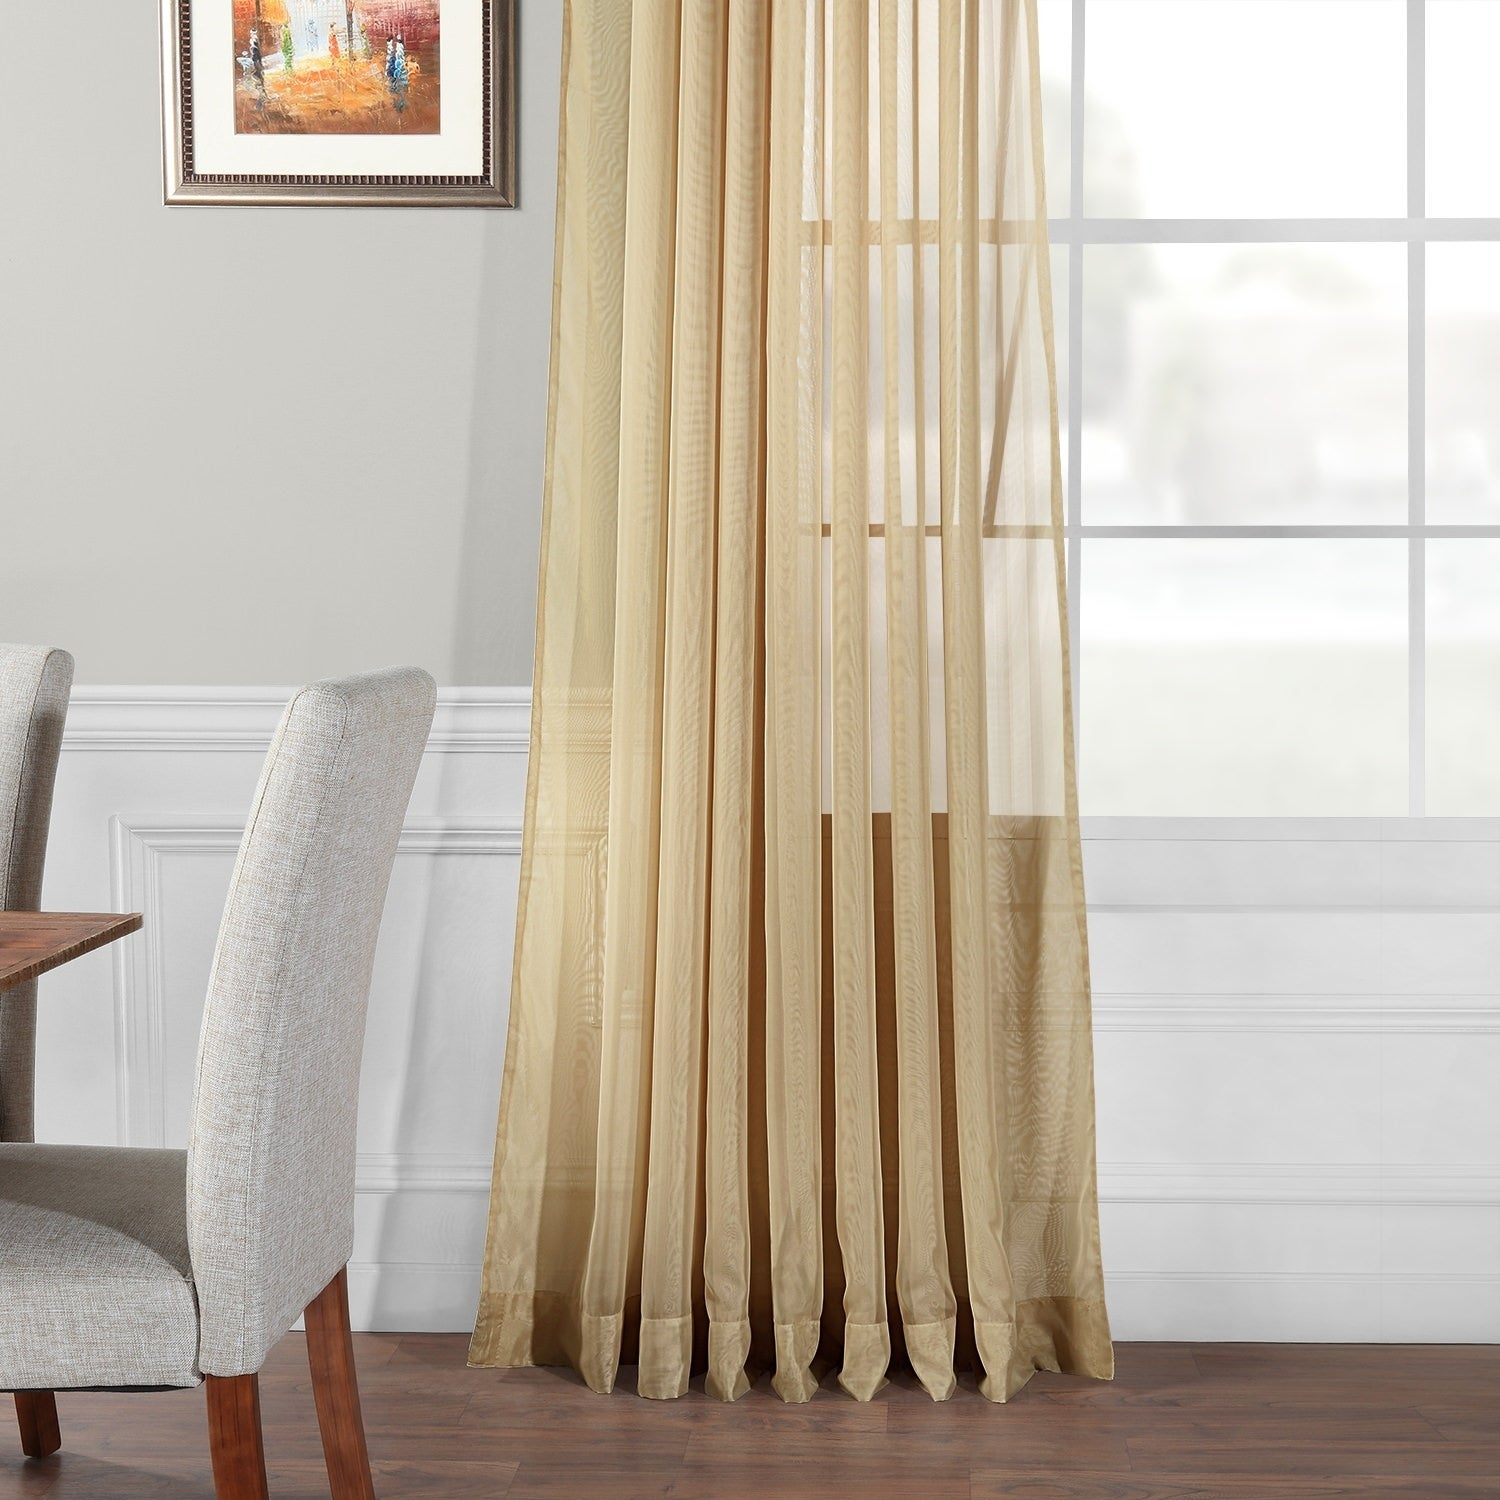 Exclusive Fabrics Signature Extrawide Double Layer Sheer Curtain Panel Within Signature Extrawide Double Layer Sheer Curtain Panels (View 9 of 11)